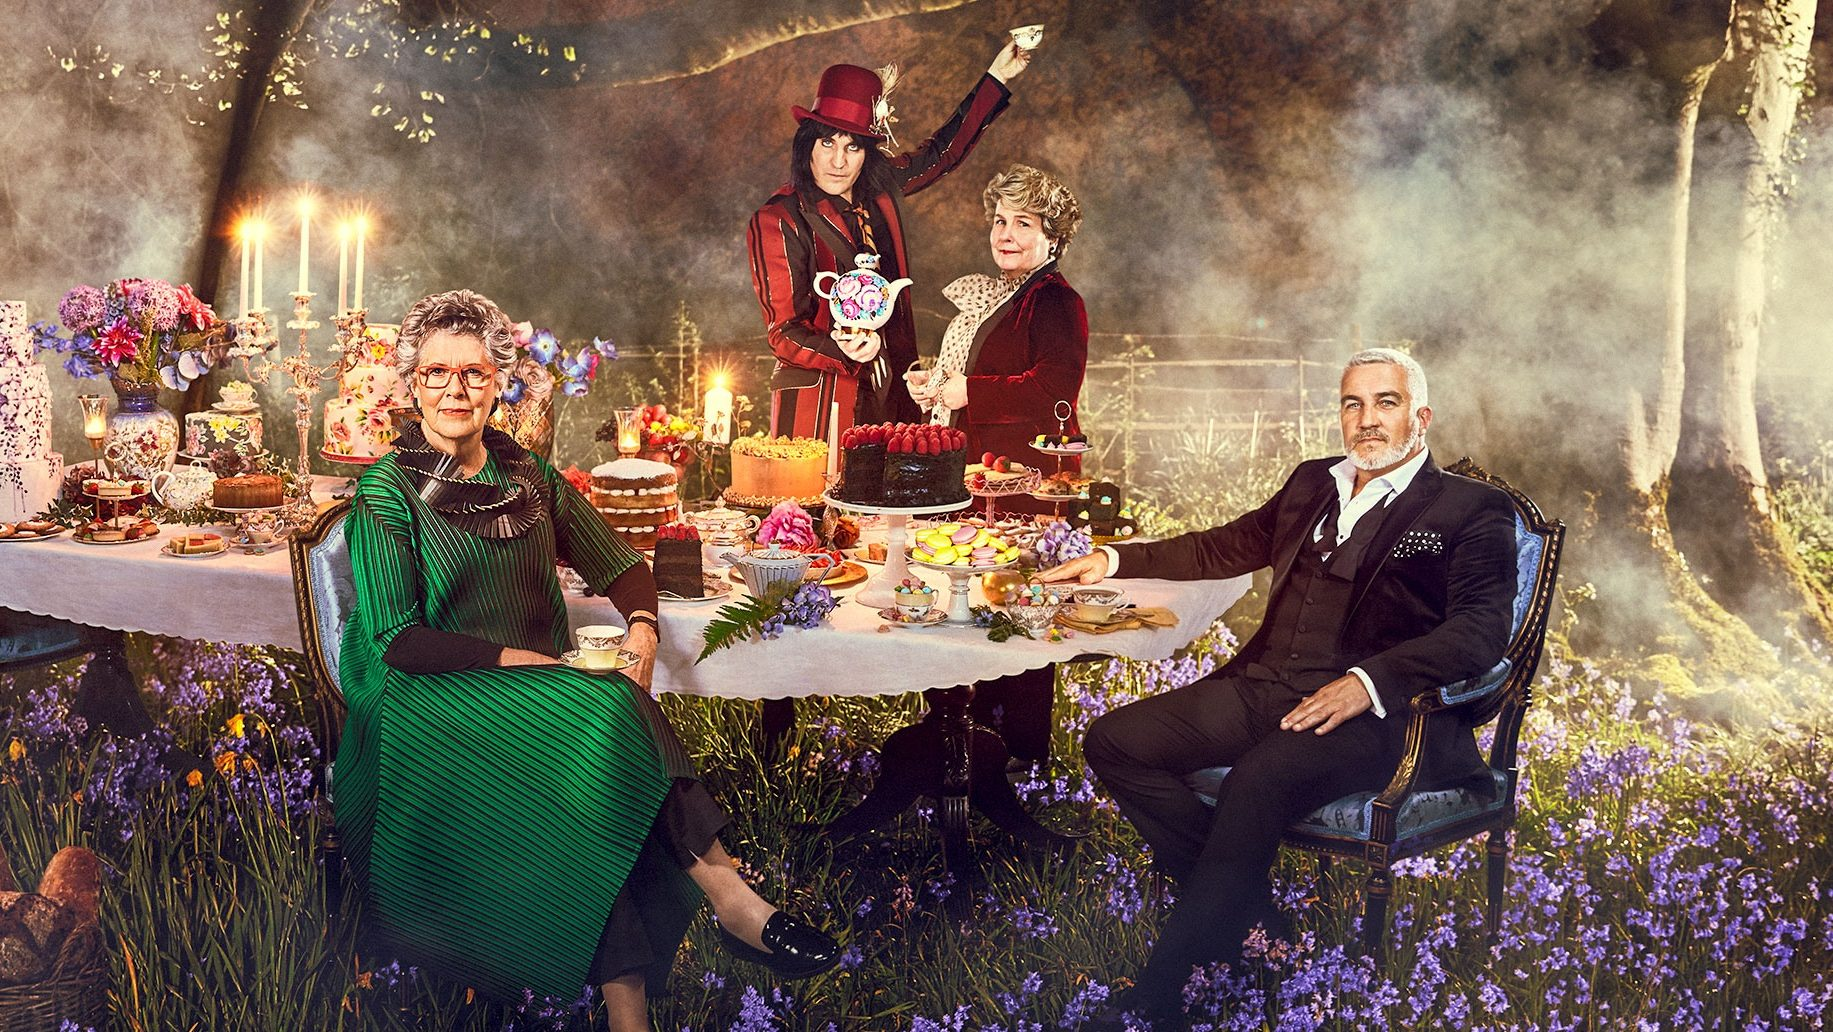 Christmas Baking Shows 2020 The Great British Bake Off Season 11 Wraps Amid Coronavirus – Deadline